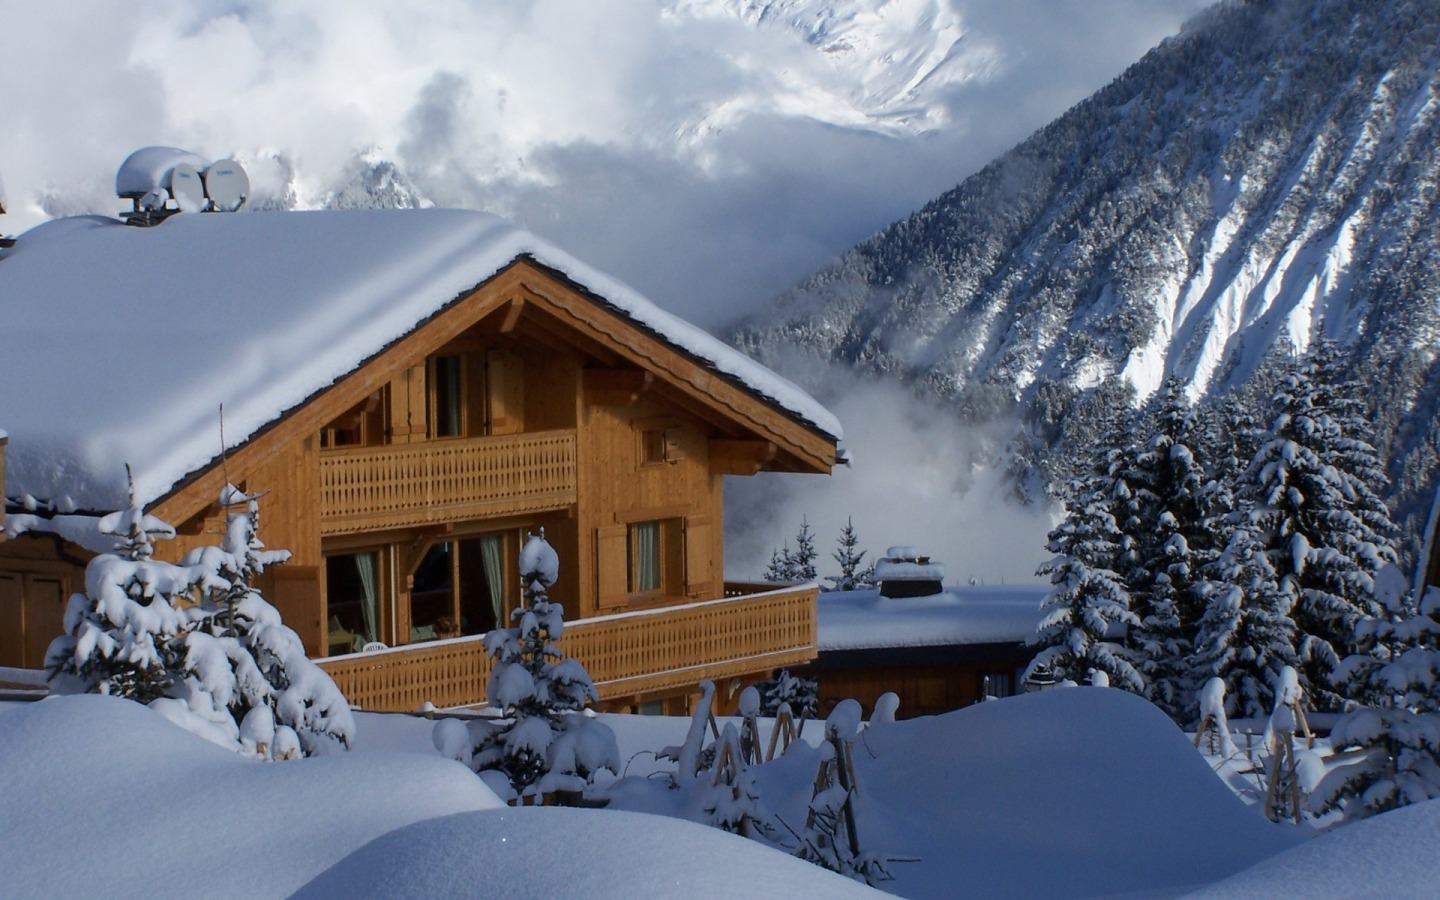 mountain-cabin-in-winter